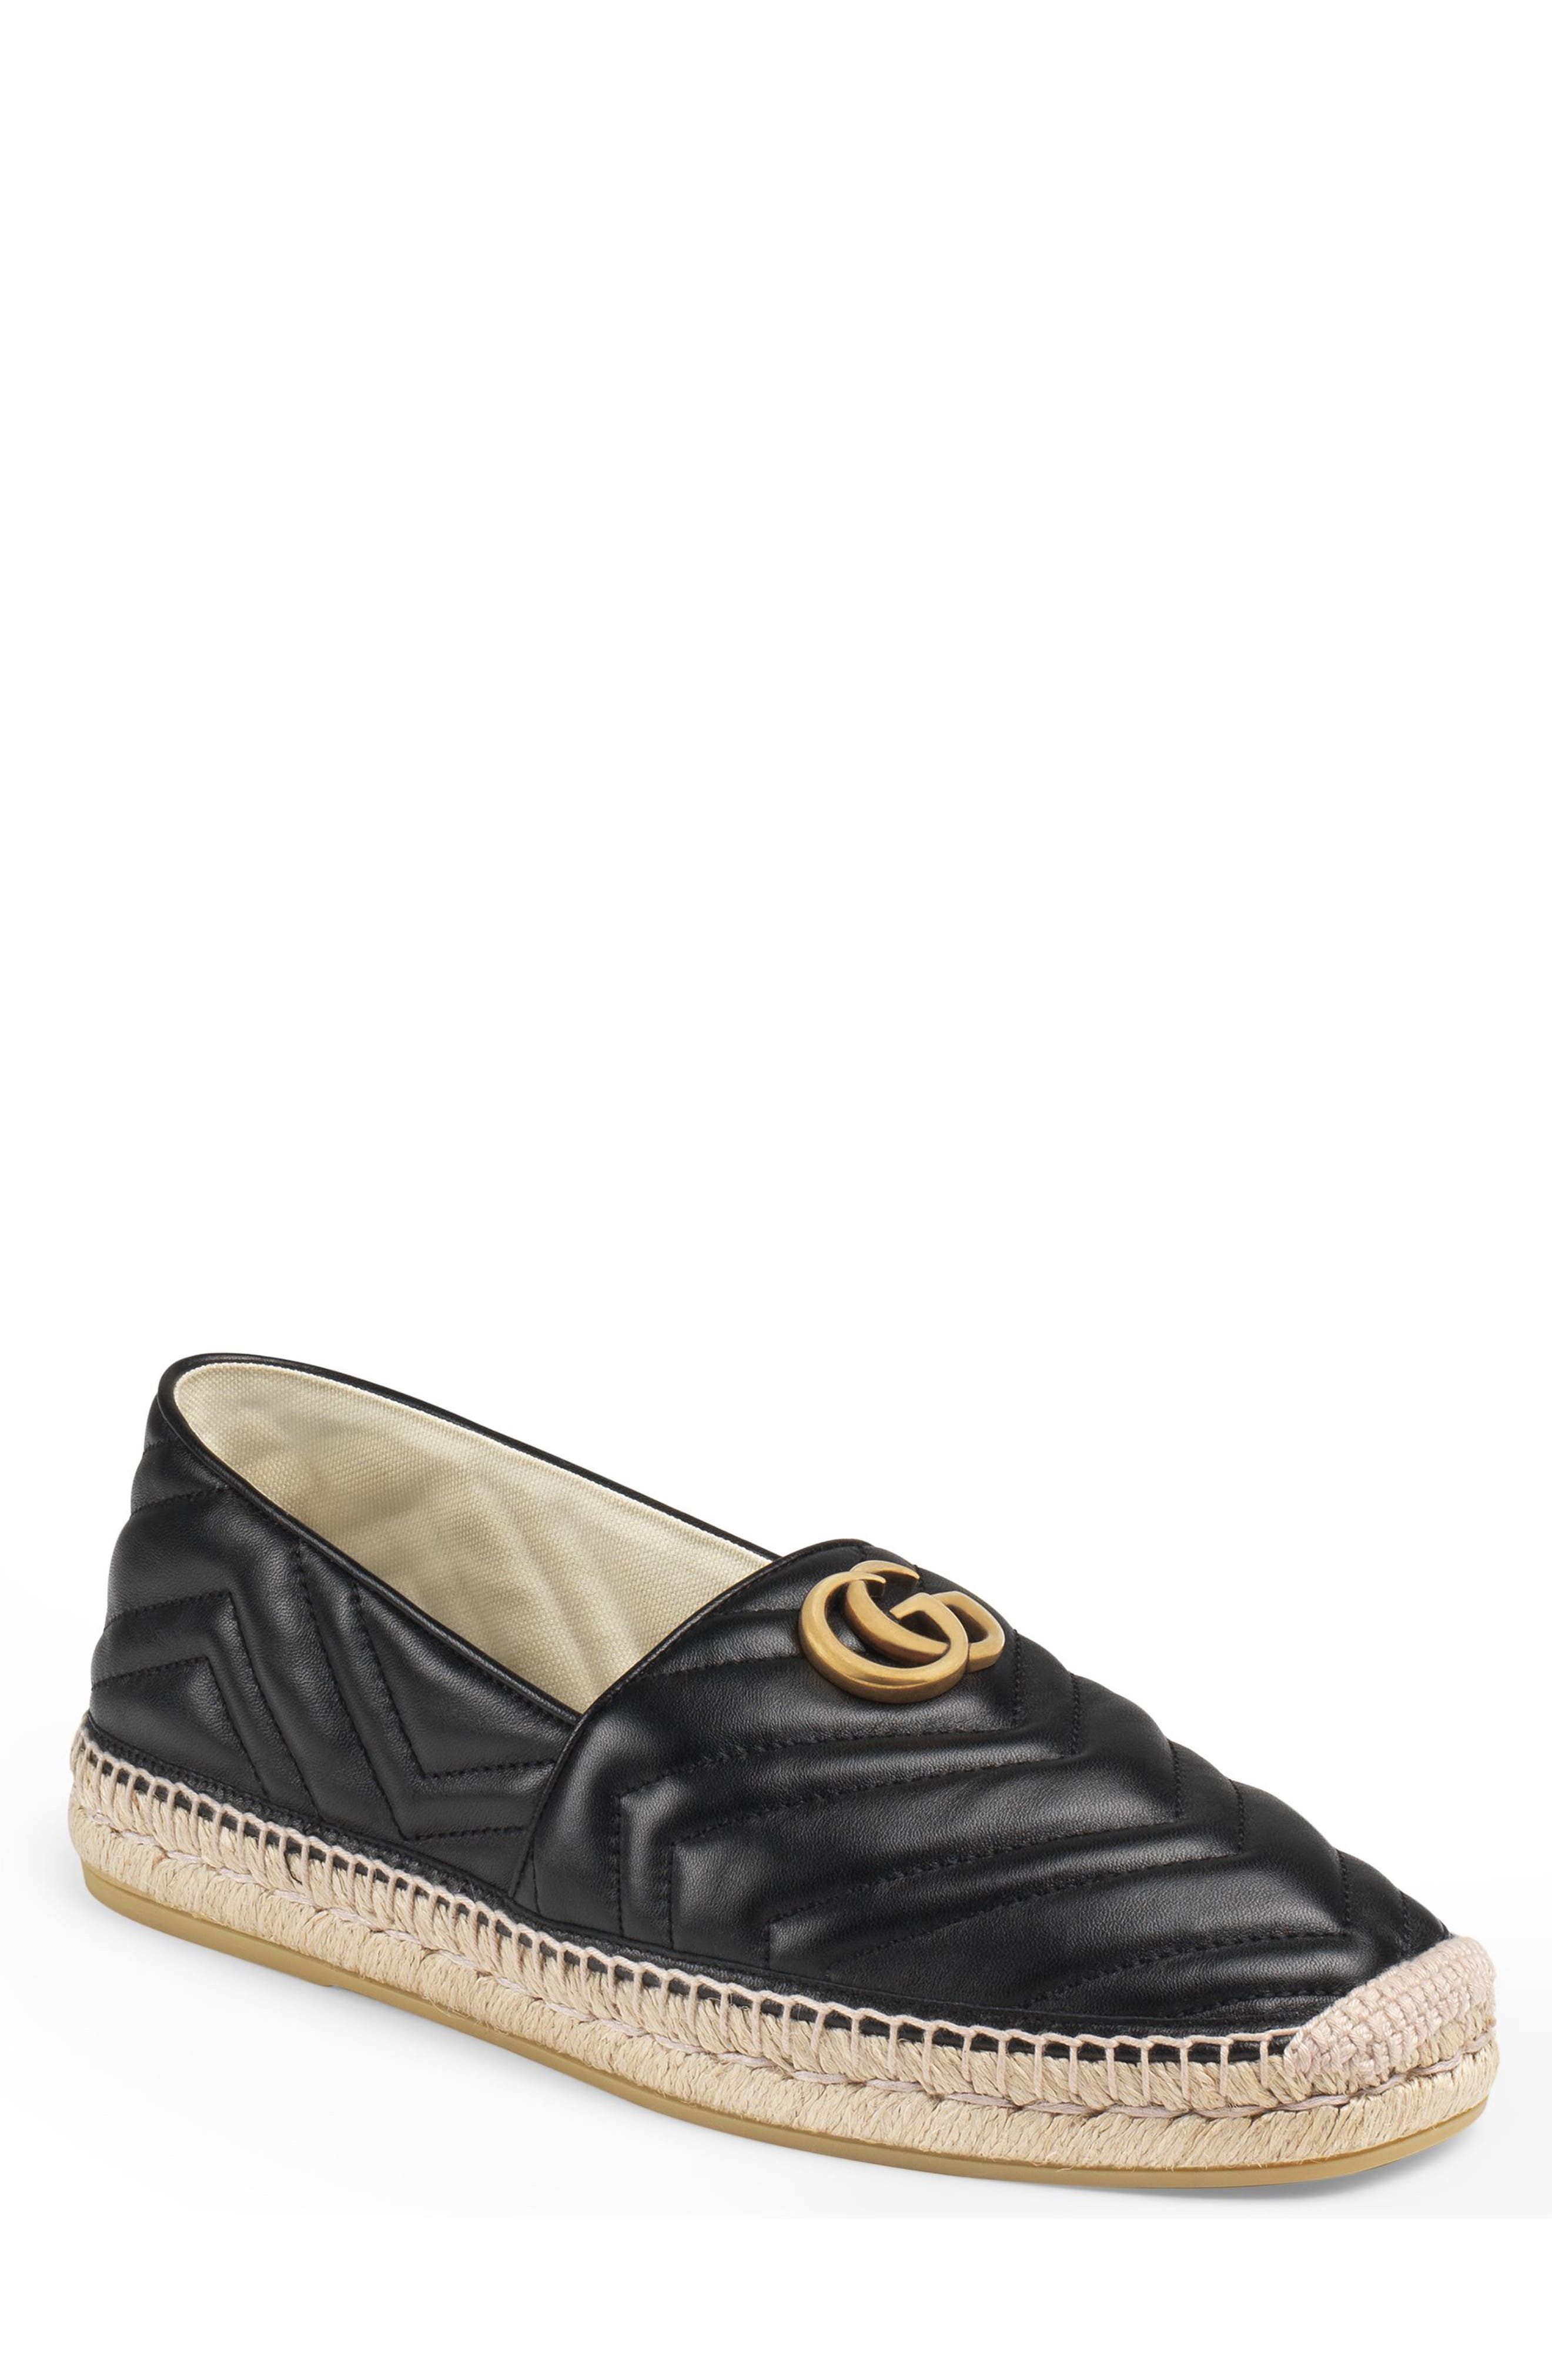 GUCCI, Alejandro Quilted Espadrille, Main thumbnail 1, color, NERO